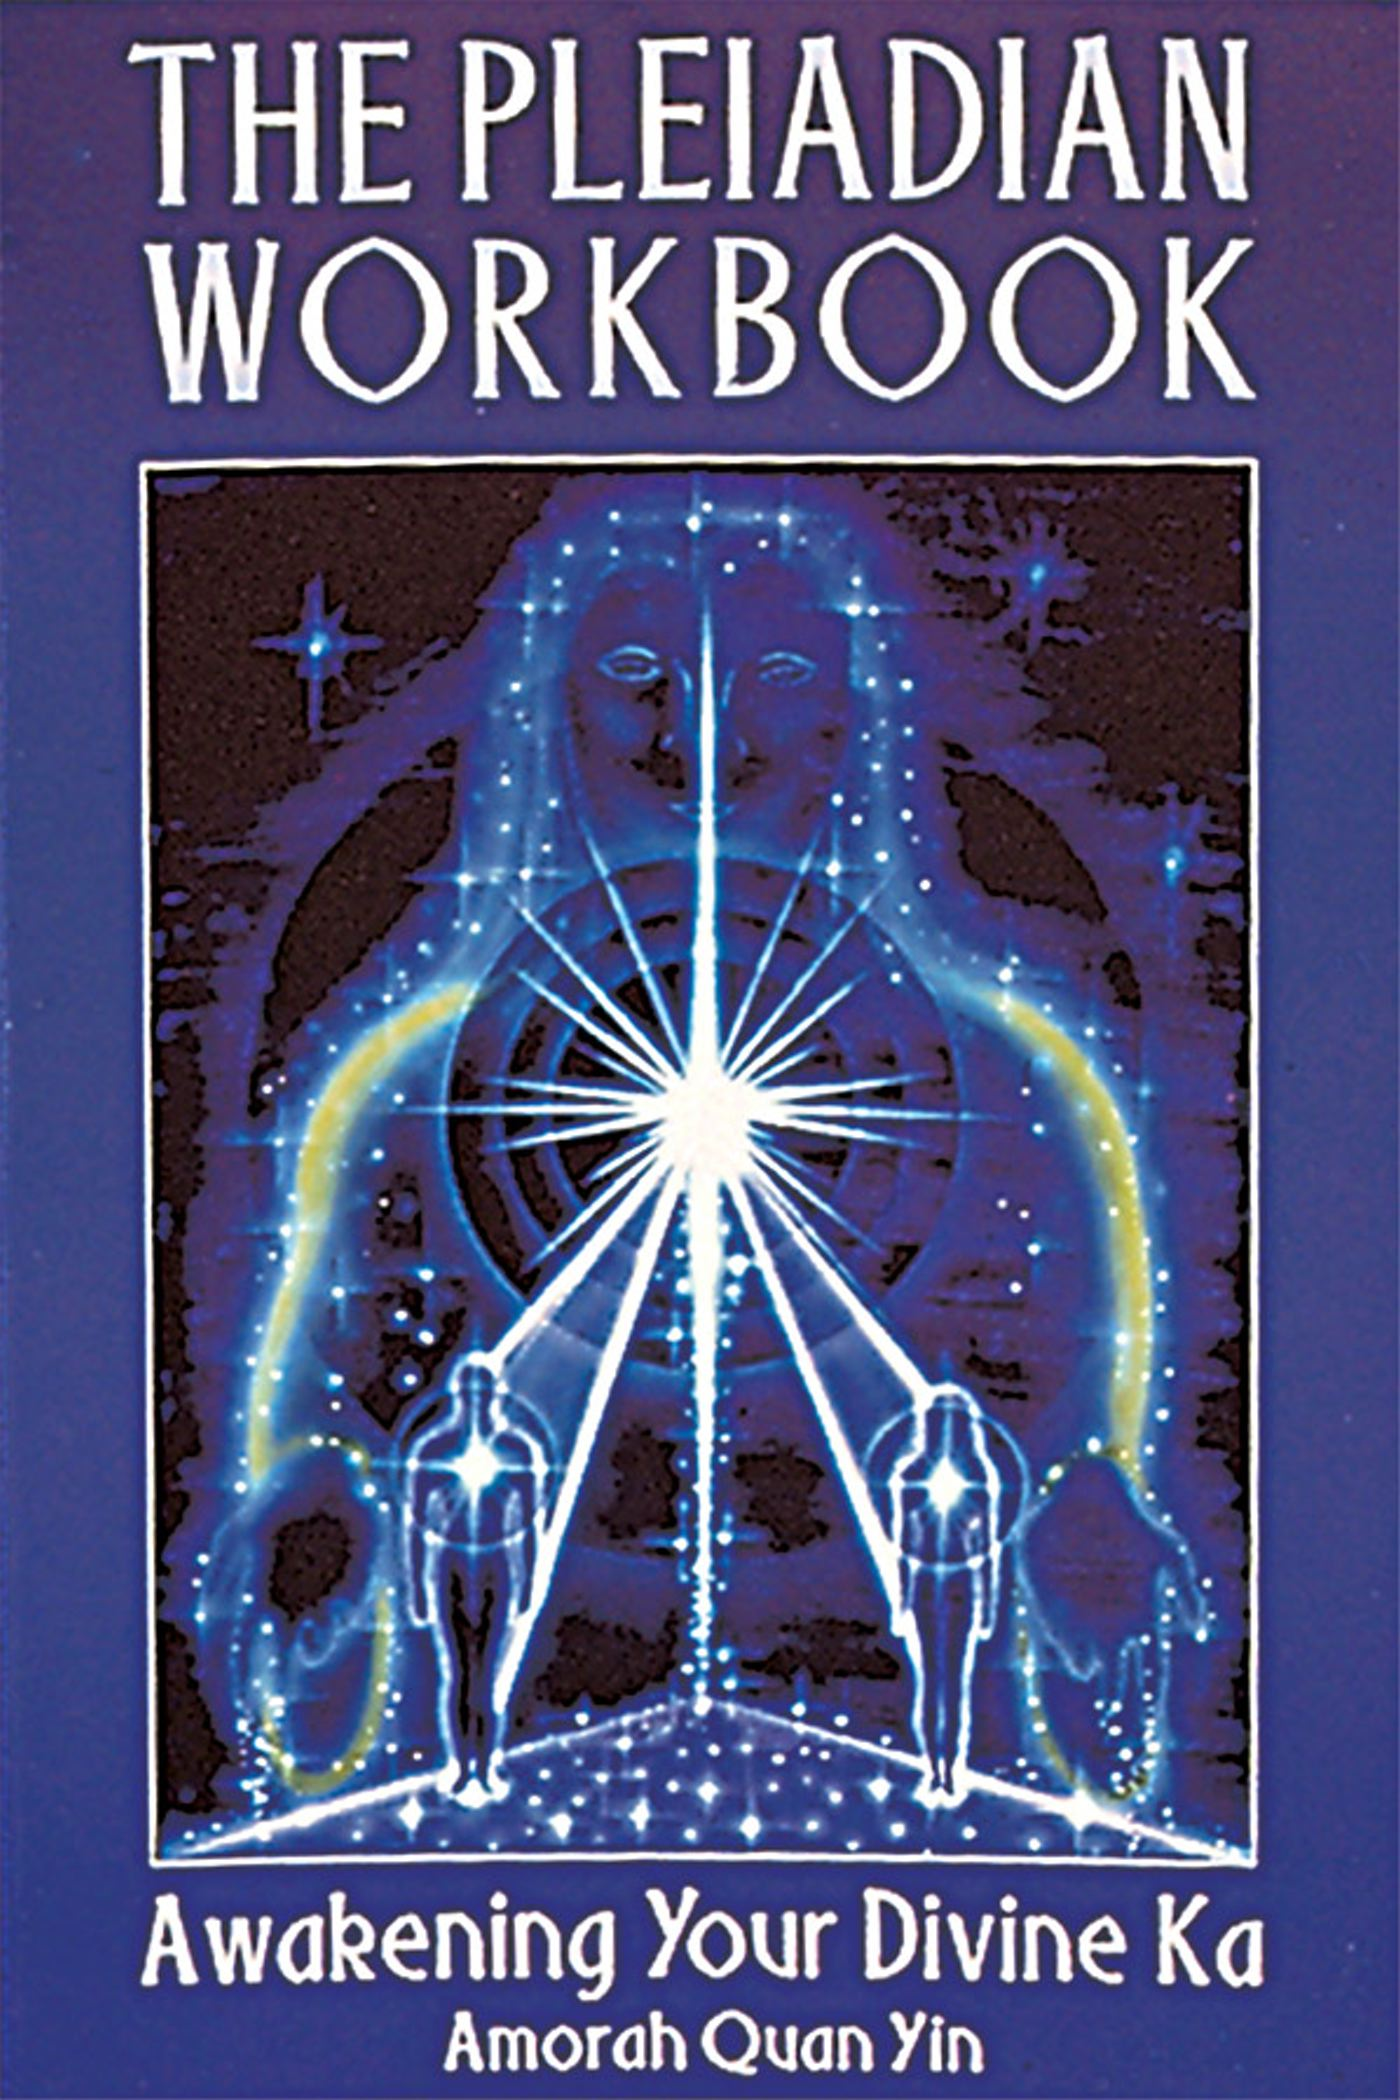 The Pleiadian Workbook | Book by Amorah Quan Yin | Official